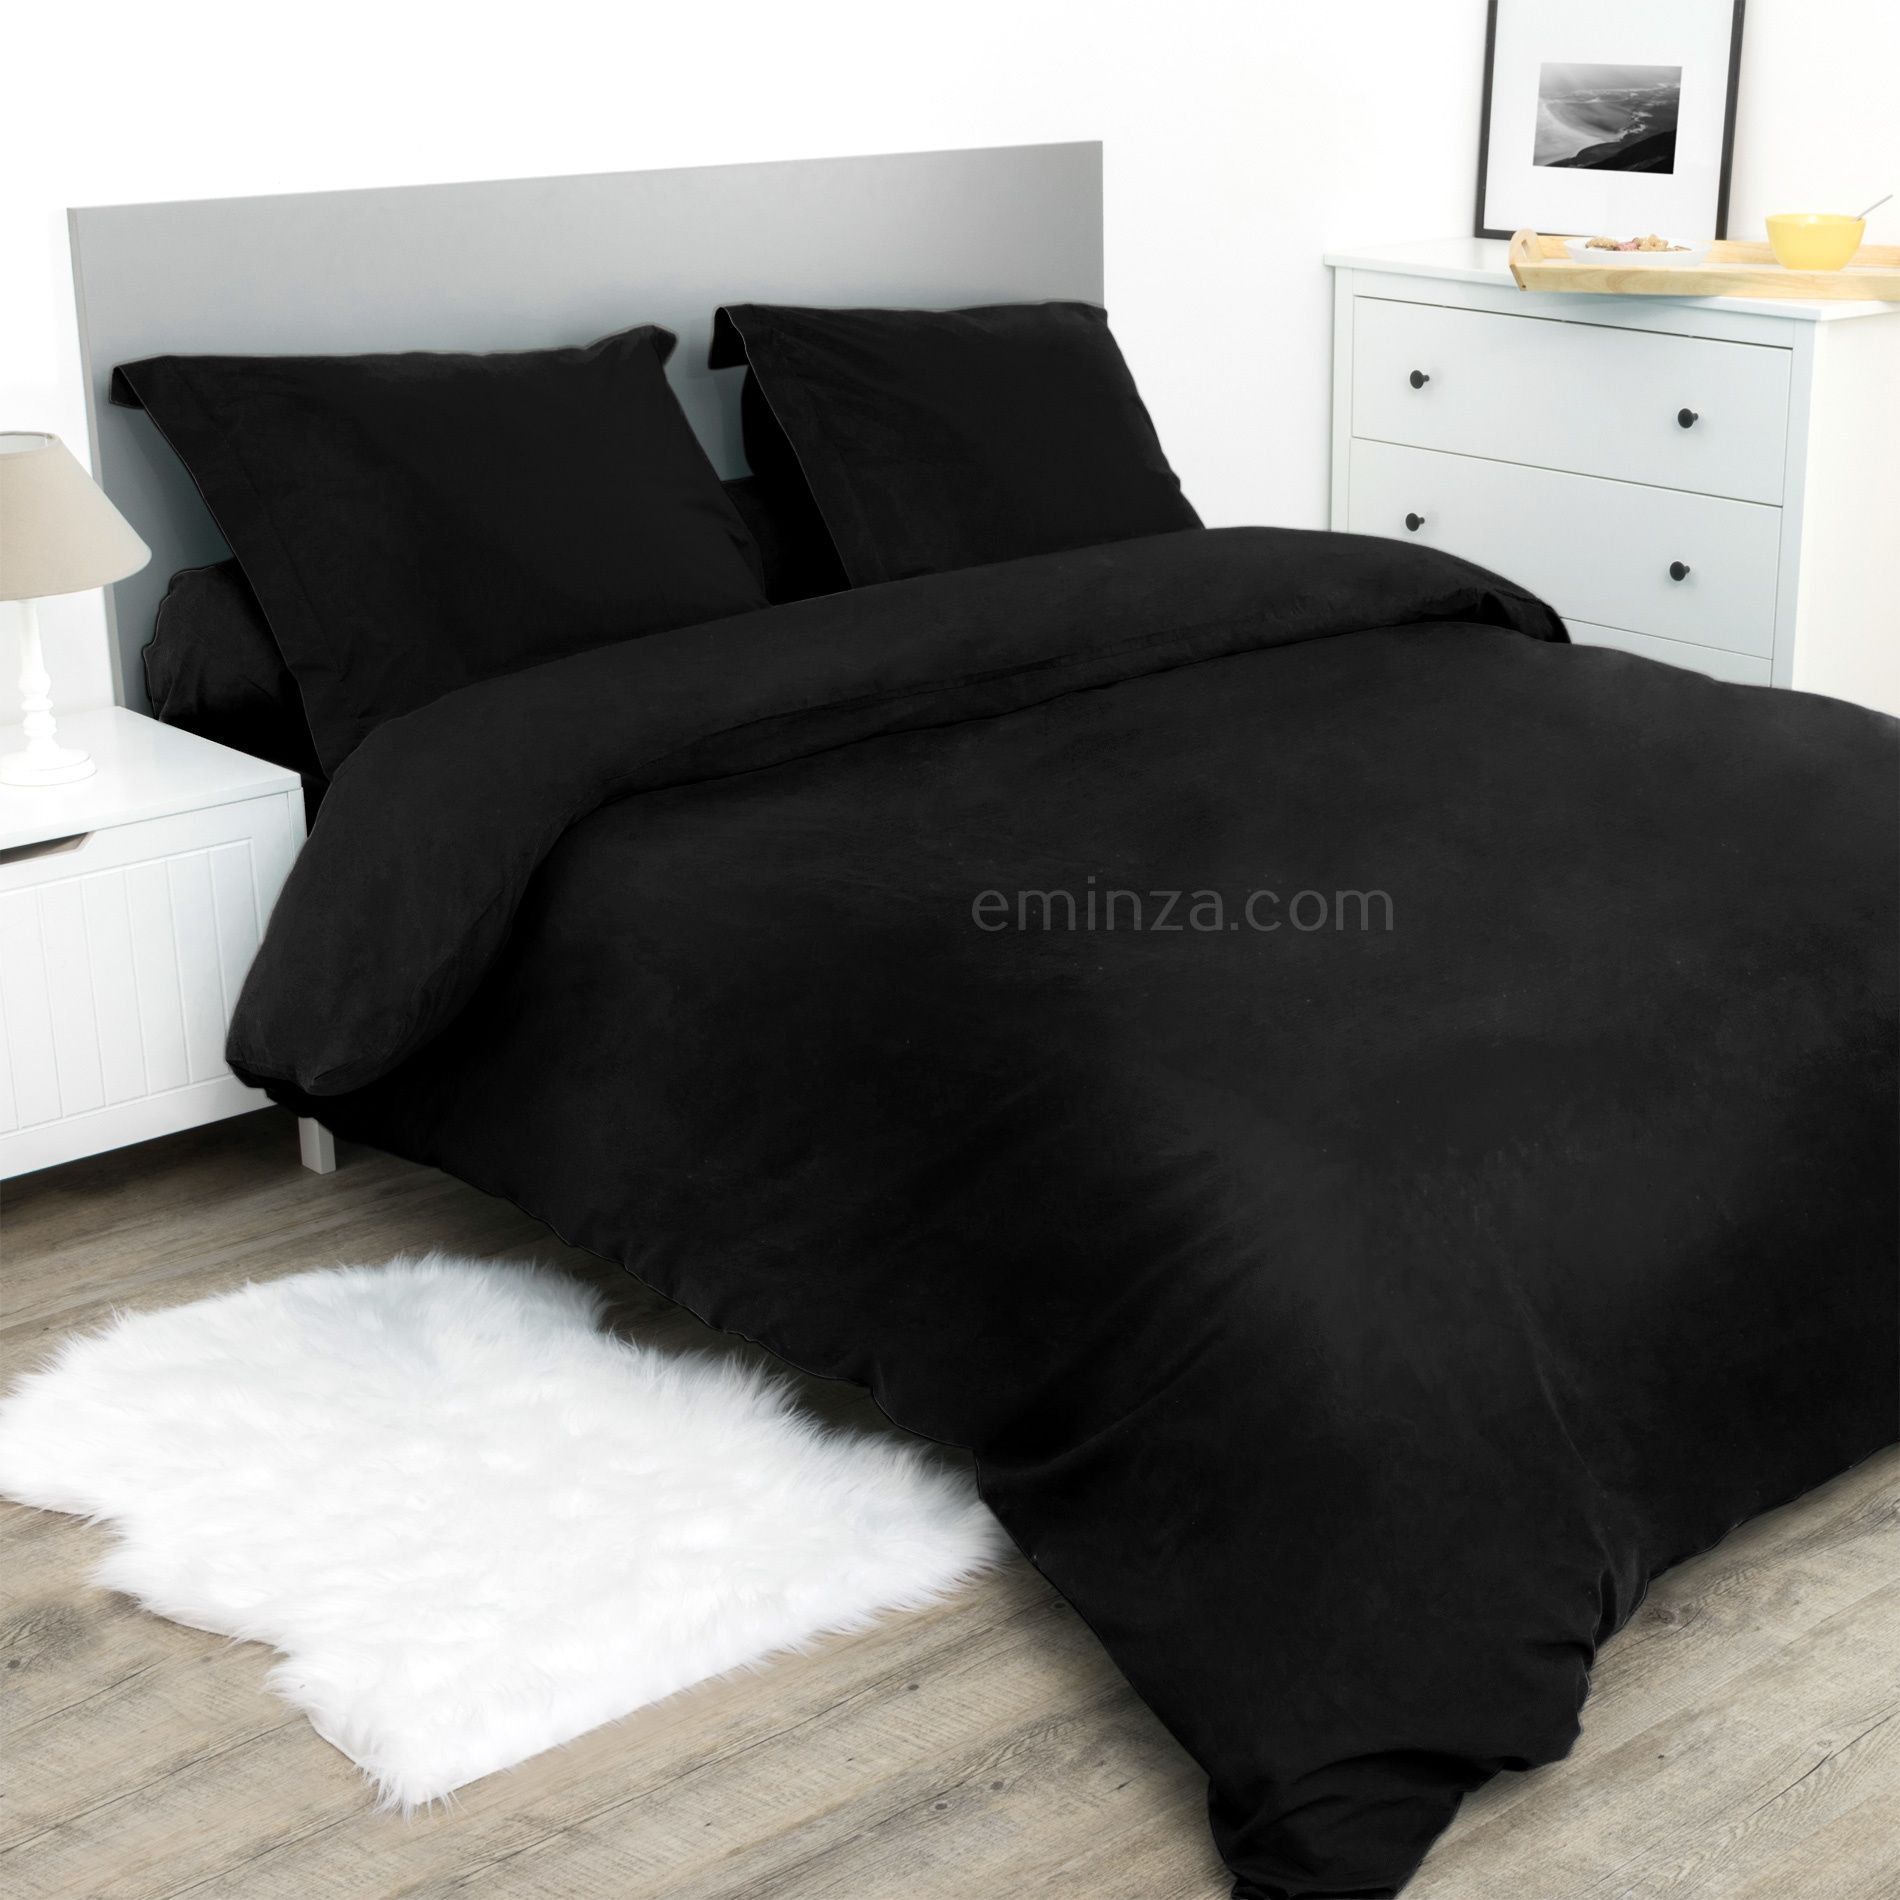 housse de couette 240 cm confort noir housse de couette eminza. Black Bedroom Furniture Sets. Home Design Ideas